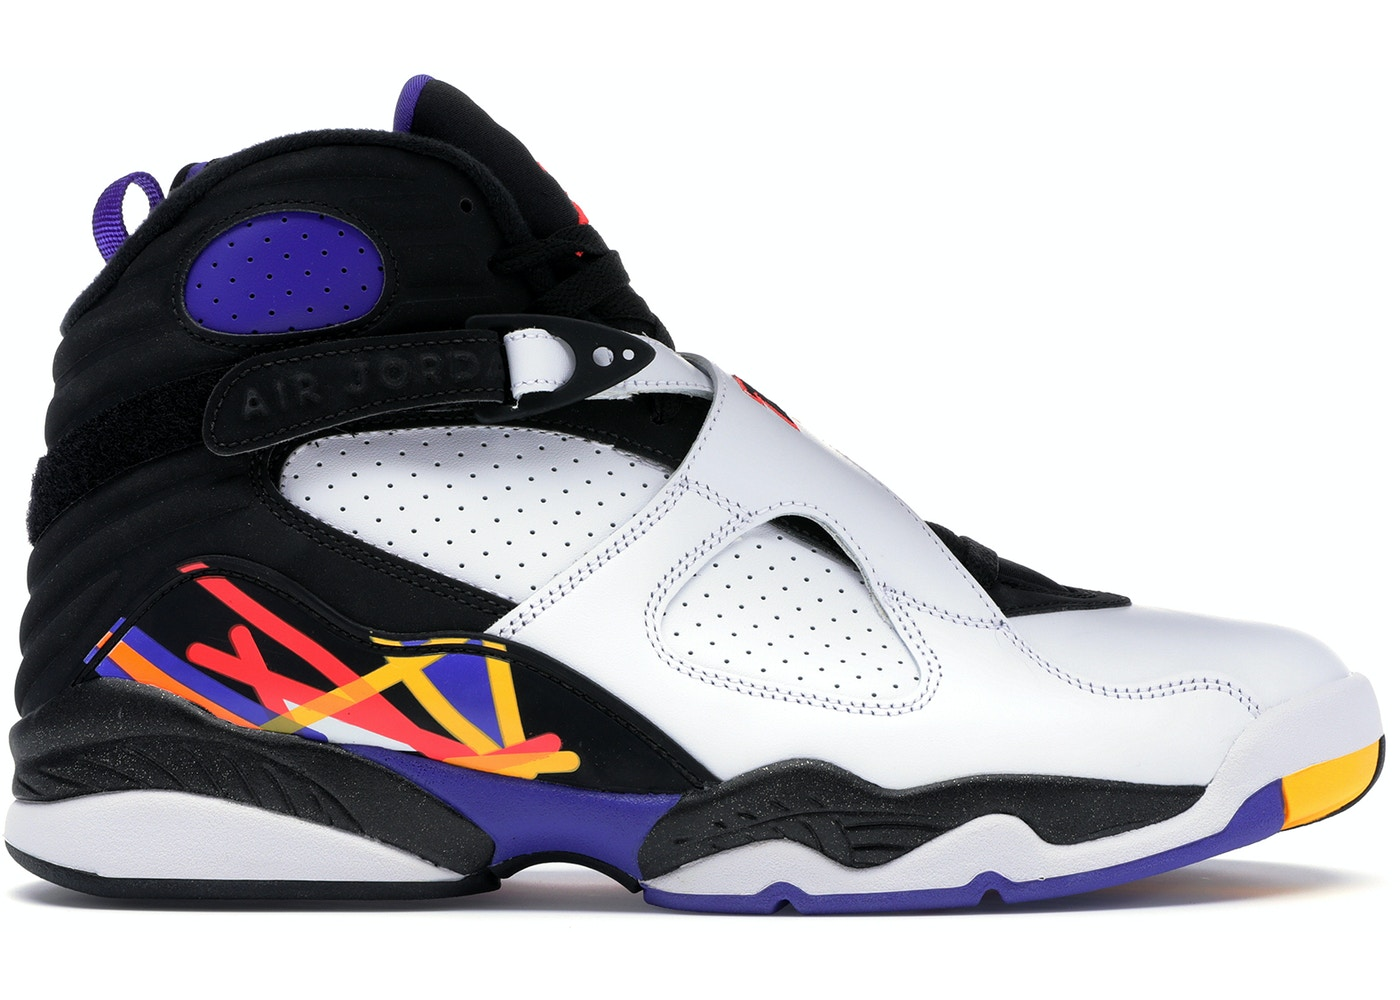 613c5f62 Jordan 8 Retro Three Peat - 305381-142